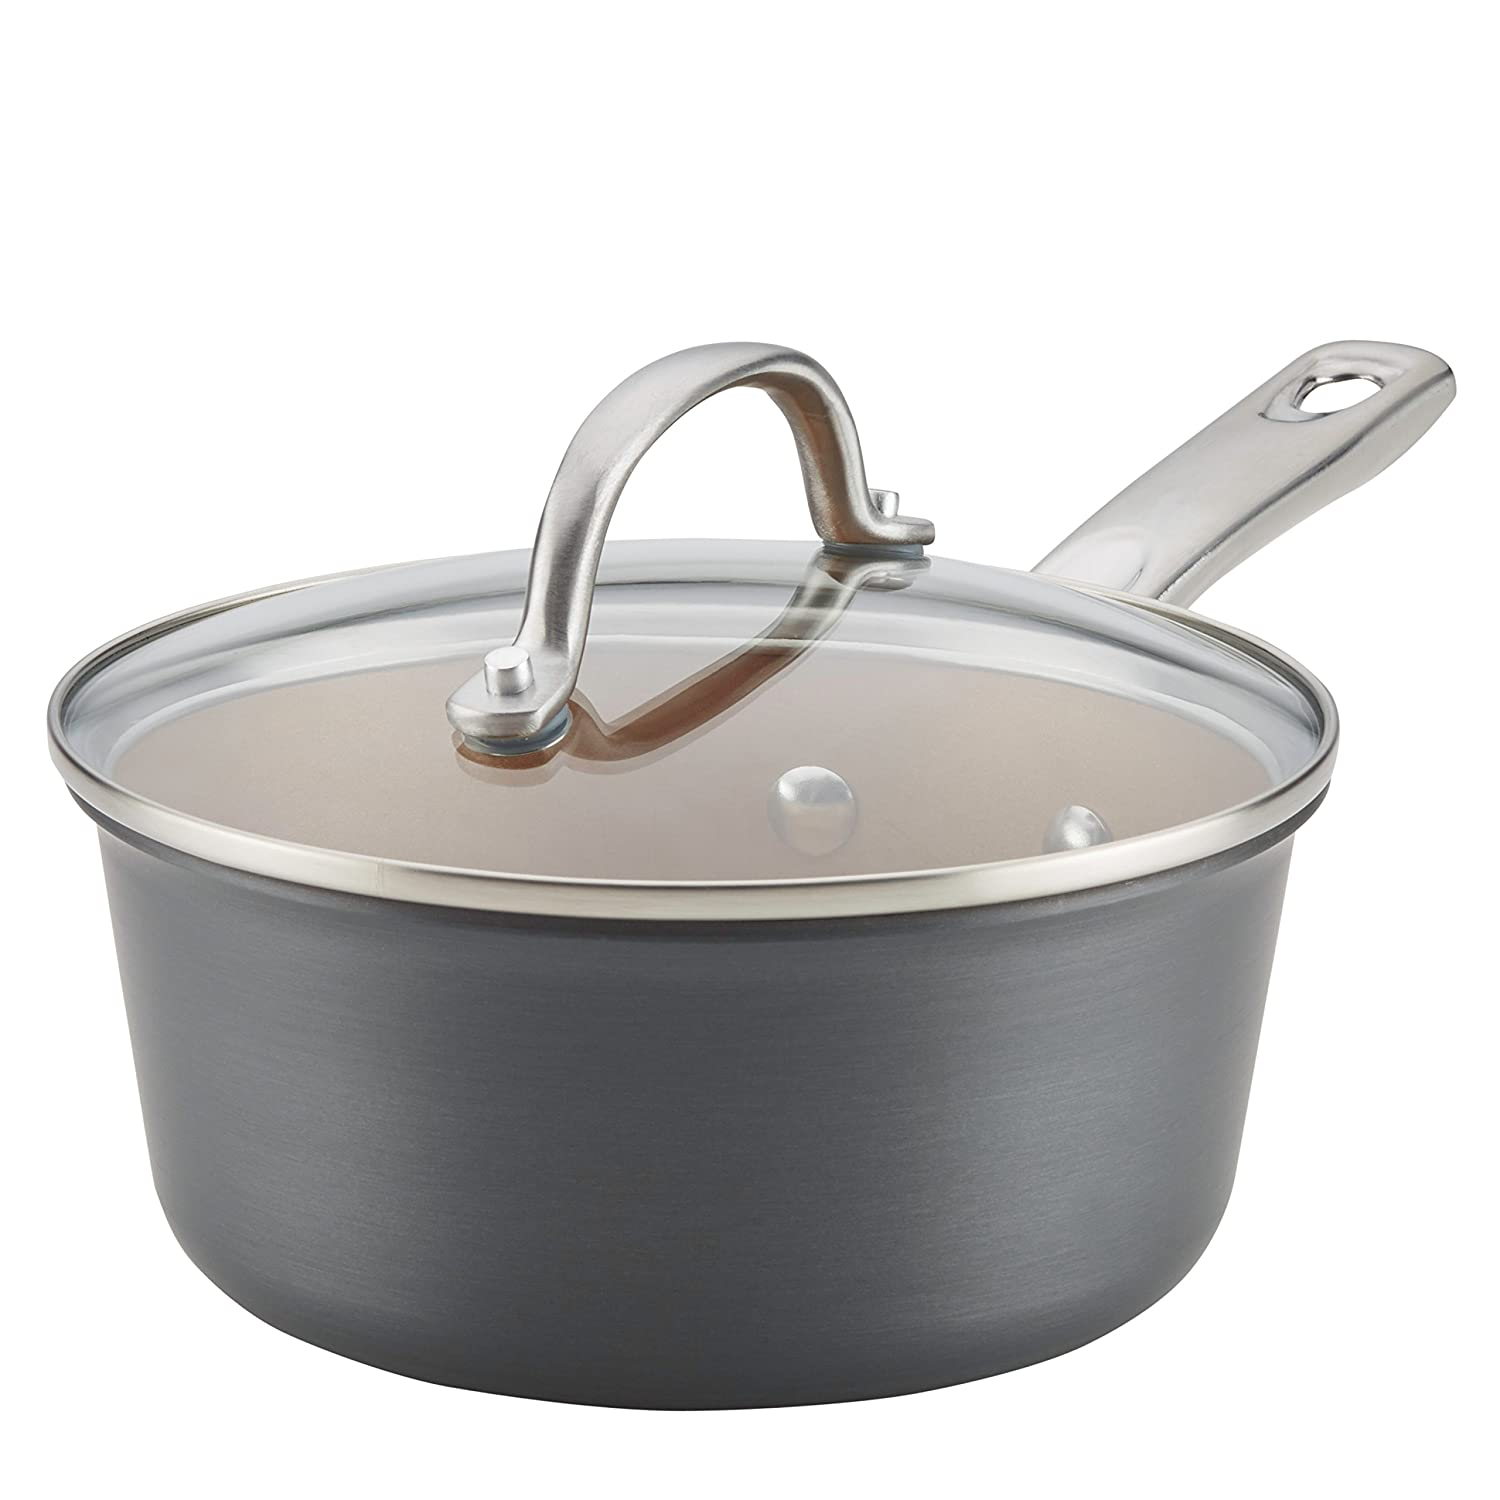 Ayesha Home Collection Hard-Anodized Nonstick Covered Saucepan, 2-Quart, Gray